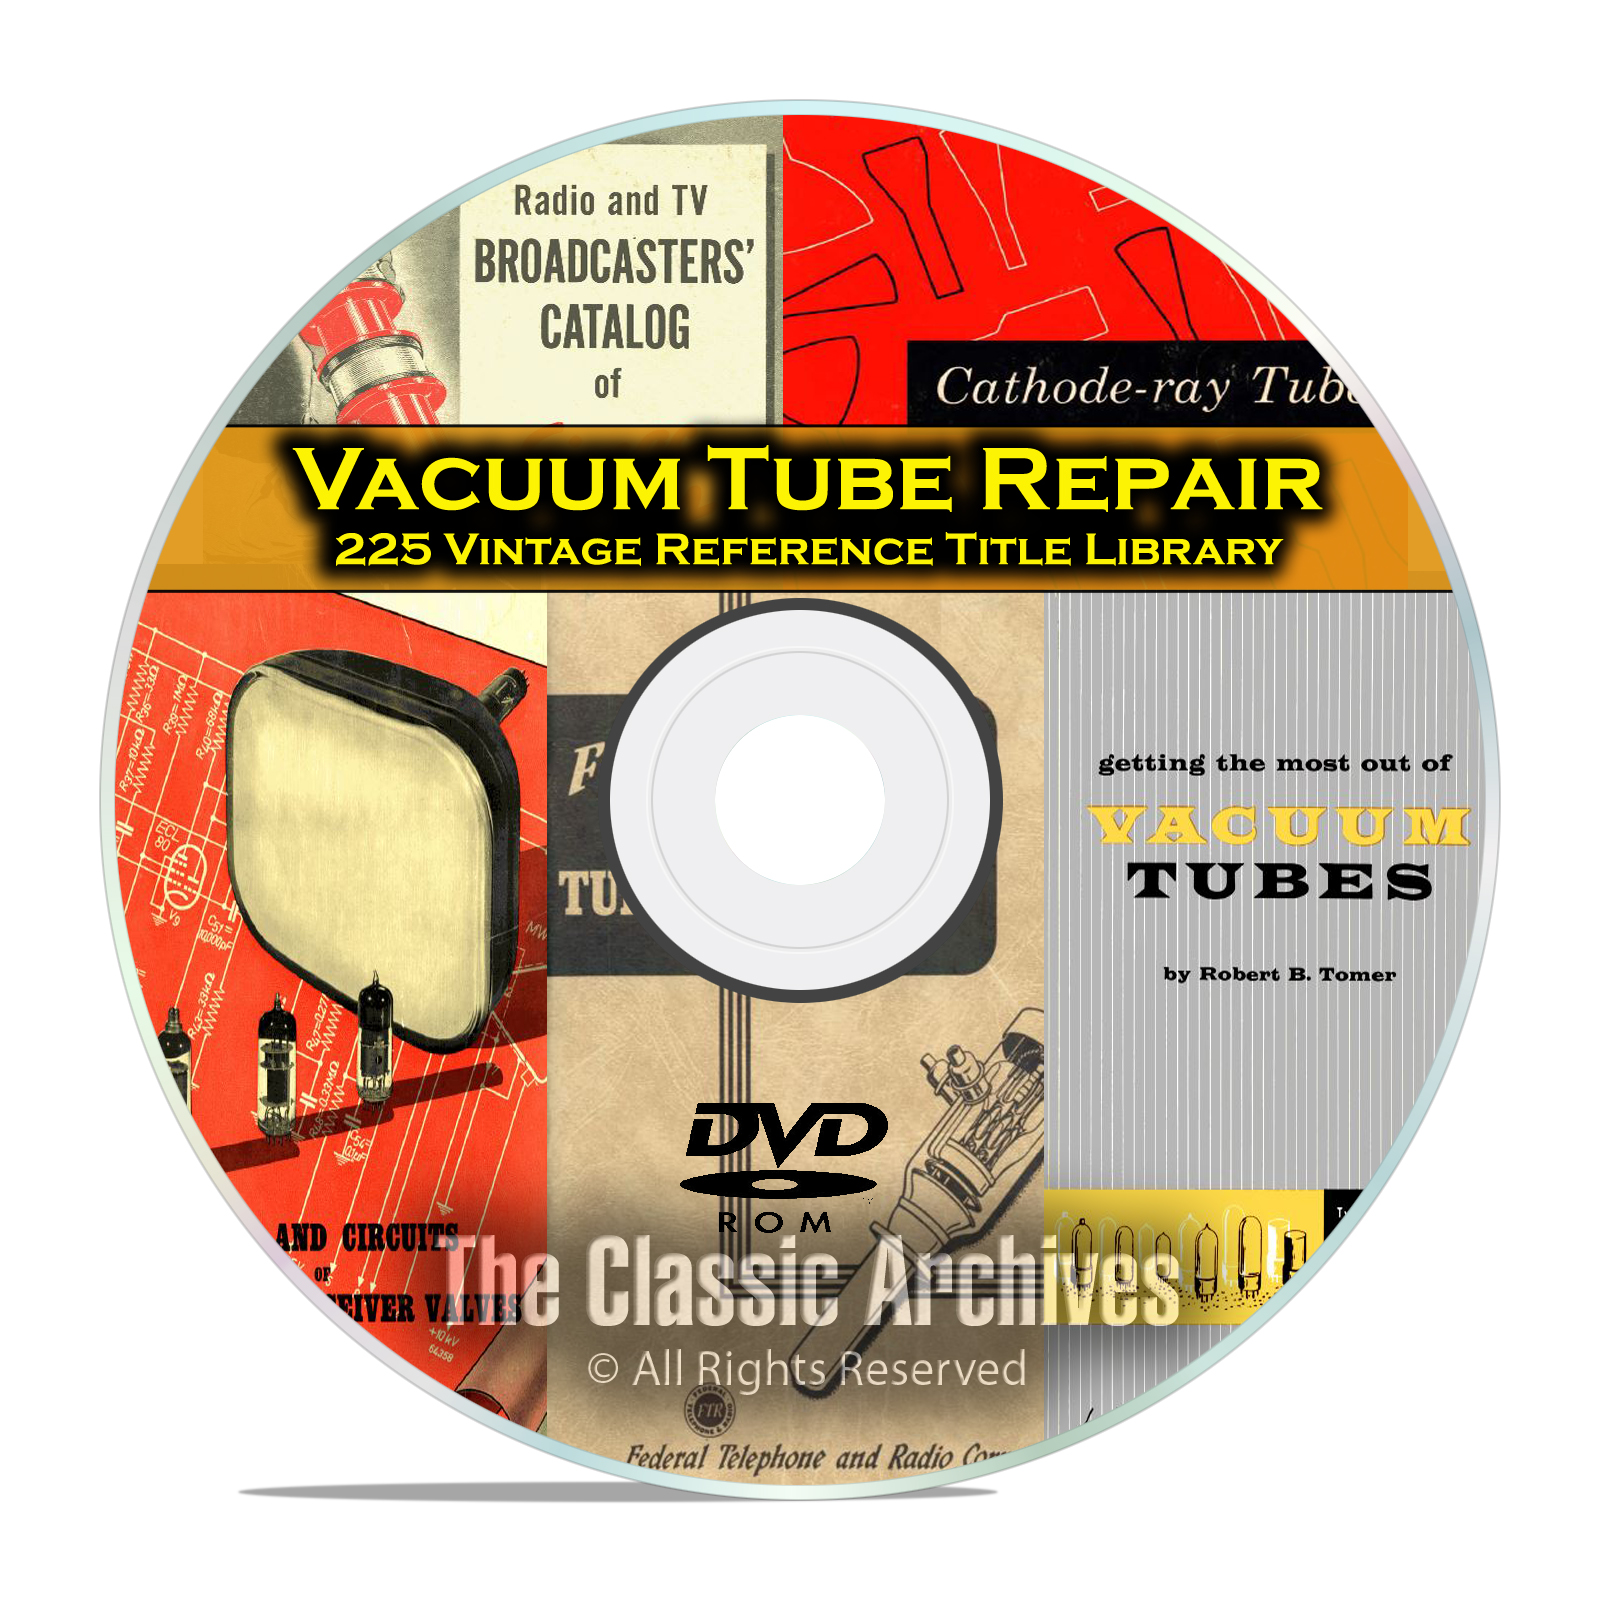 Vacuum Tubes Valves Audio Radio Repair Guides, RCA GE Vintage Reference DVD